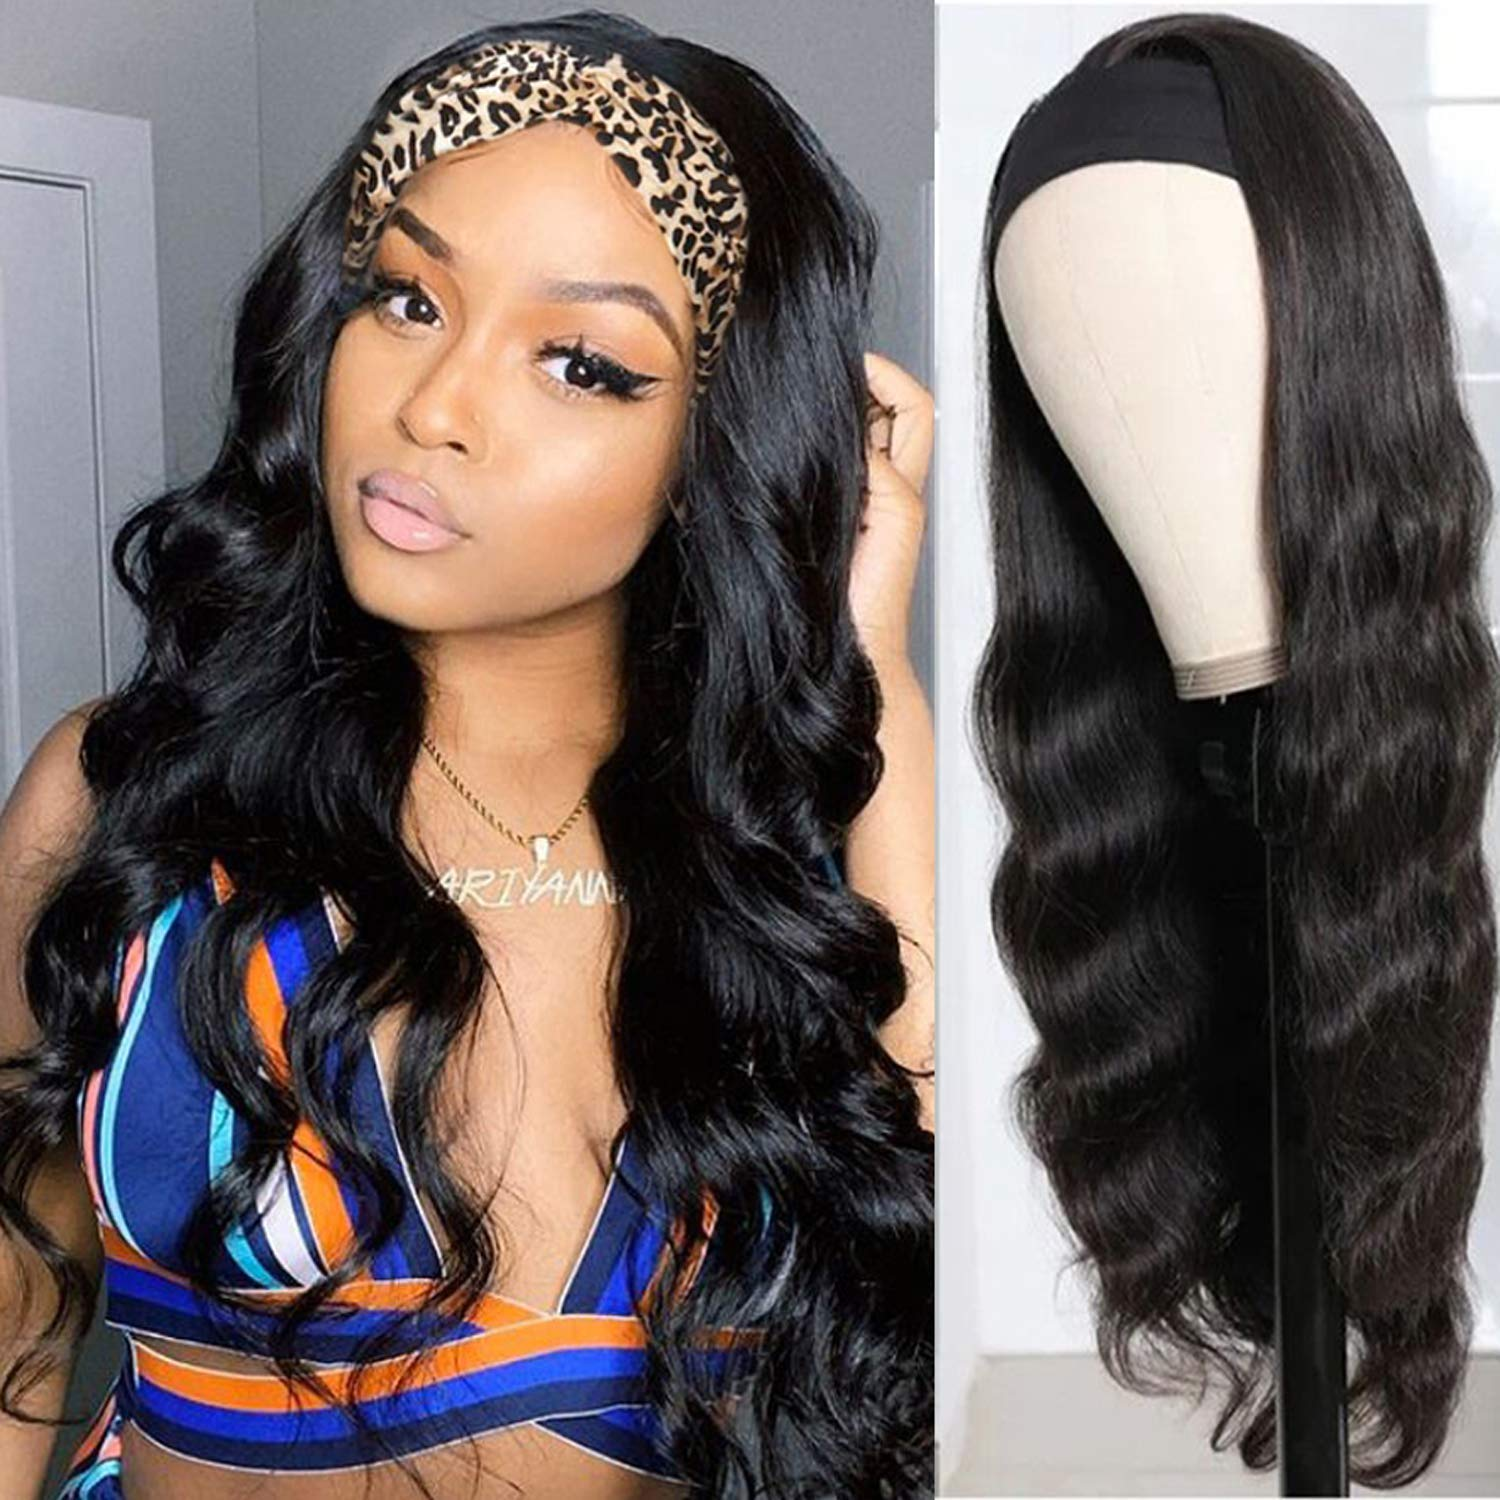 Complete Free Shipping KAFEIER Human Hair Headband Wigs Women For Wave Max 63% OFF Black Body